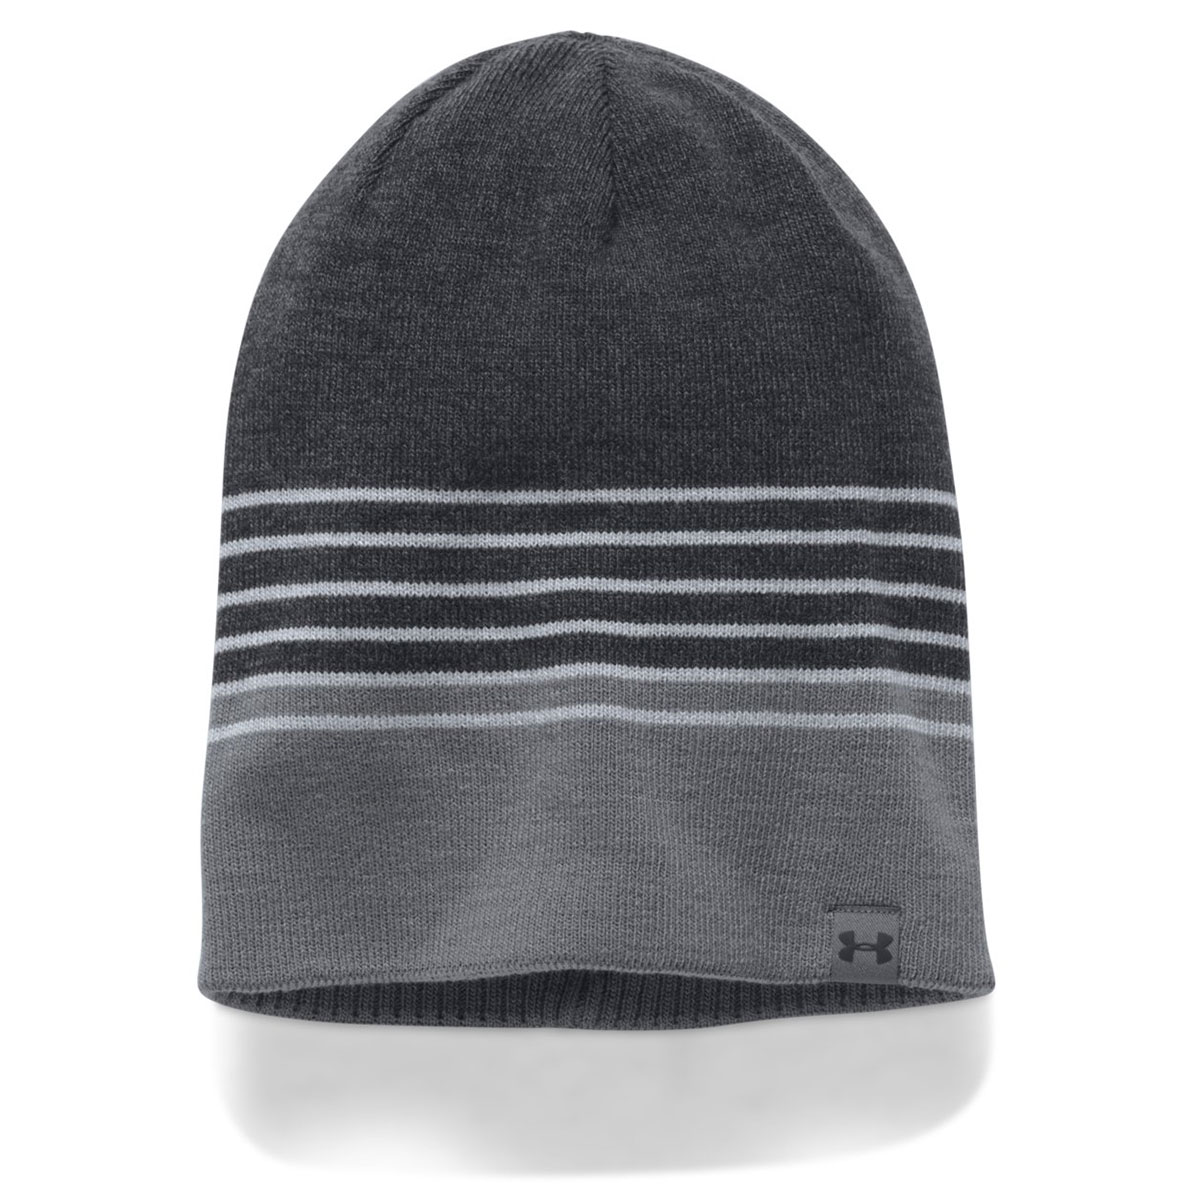 19e7fb8f458c8 Under Armour Mens UA Golf 4-in-1 Beanie 2.0 Winter Wooly Hat 57% OFF ...